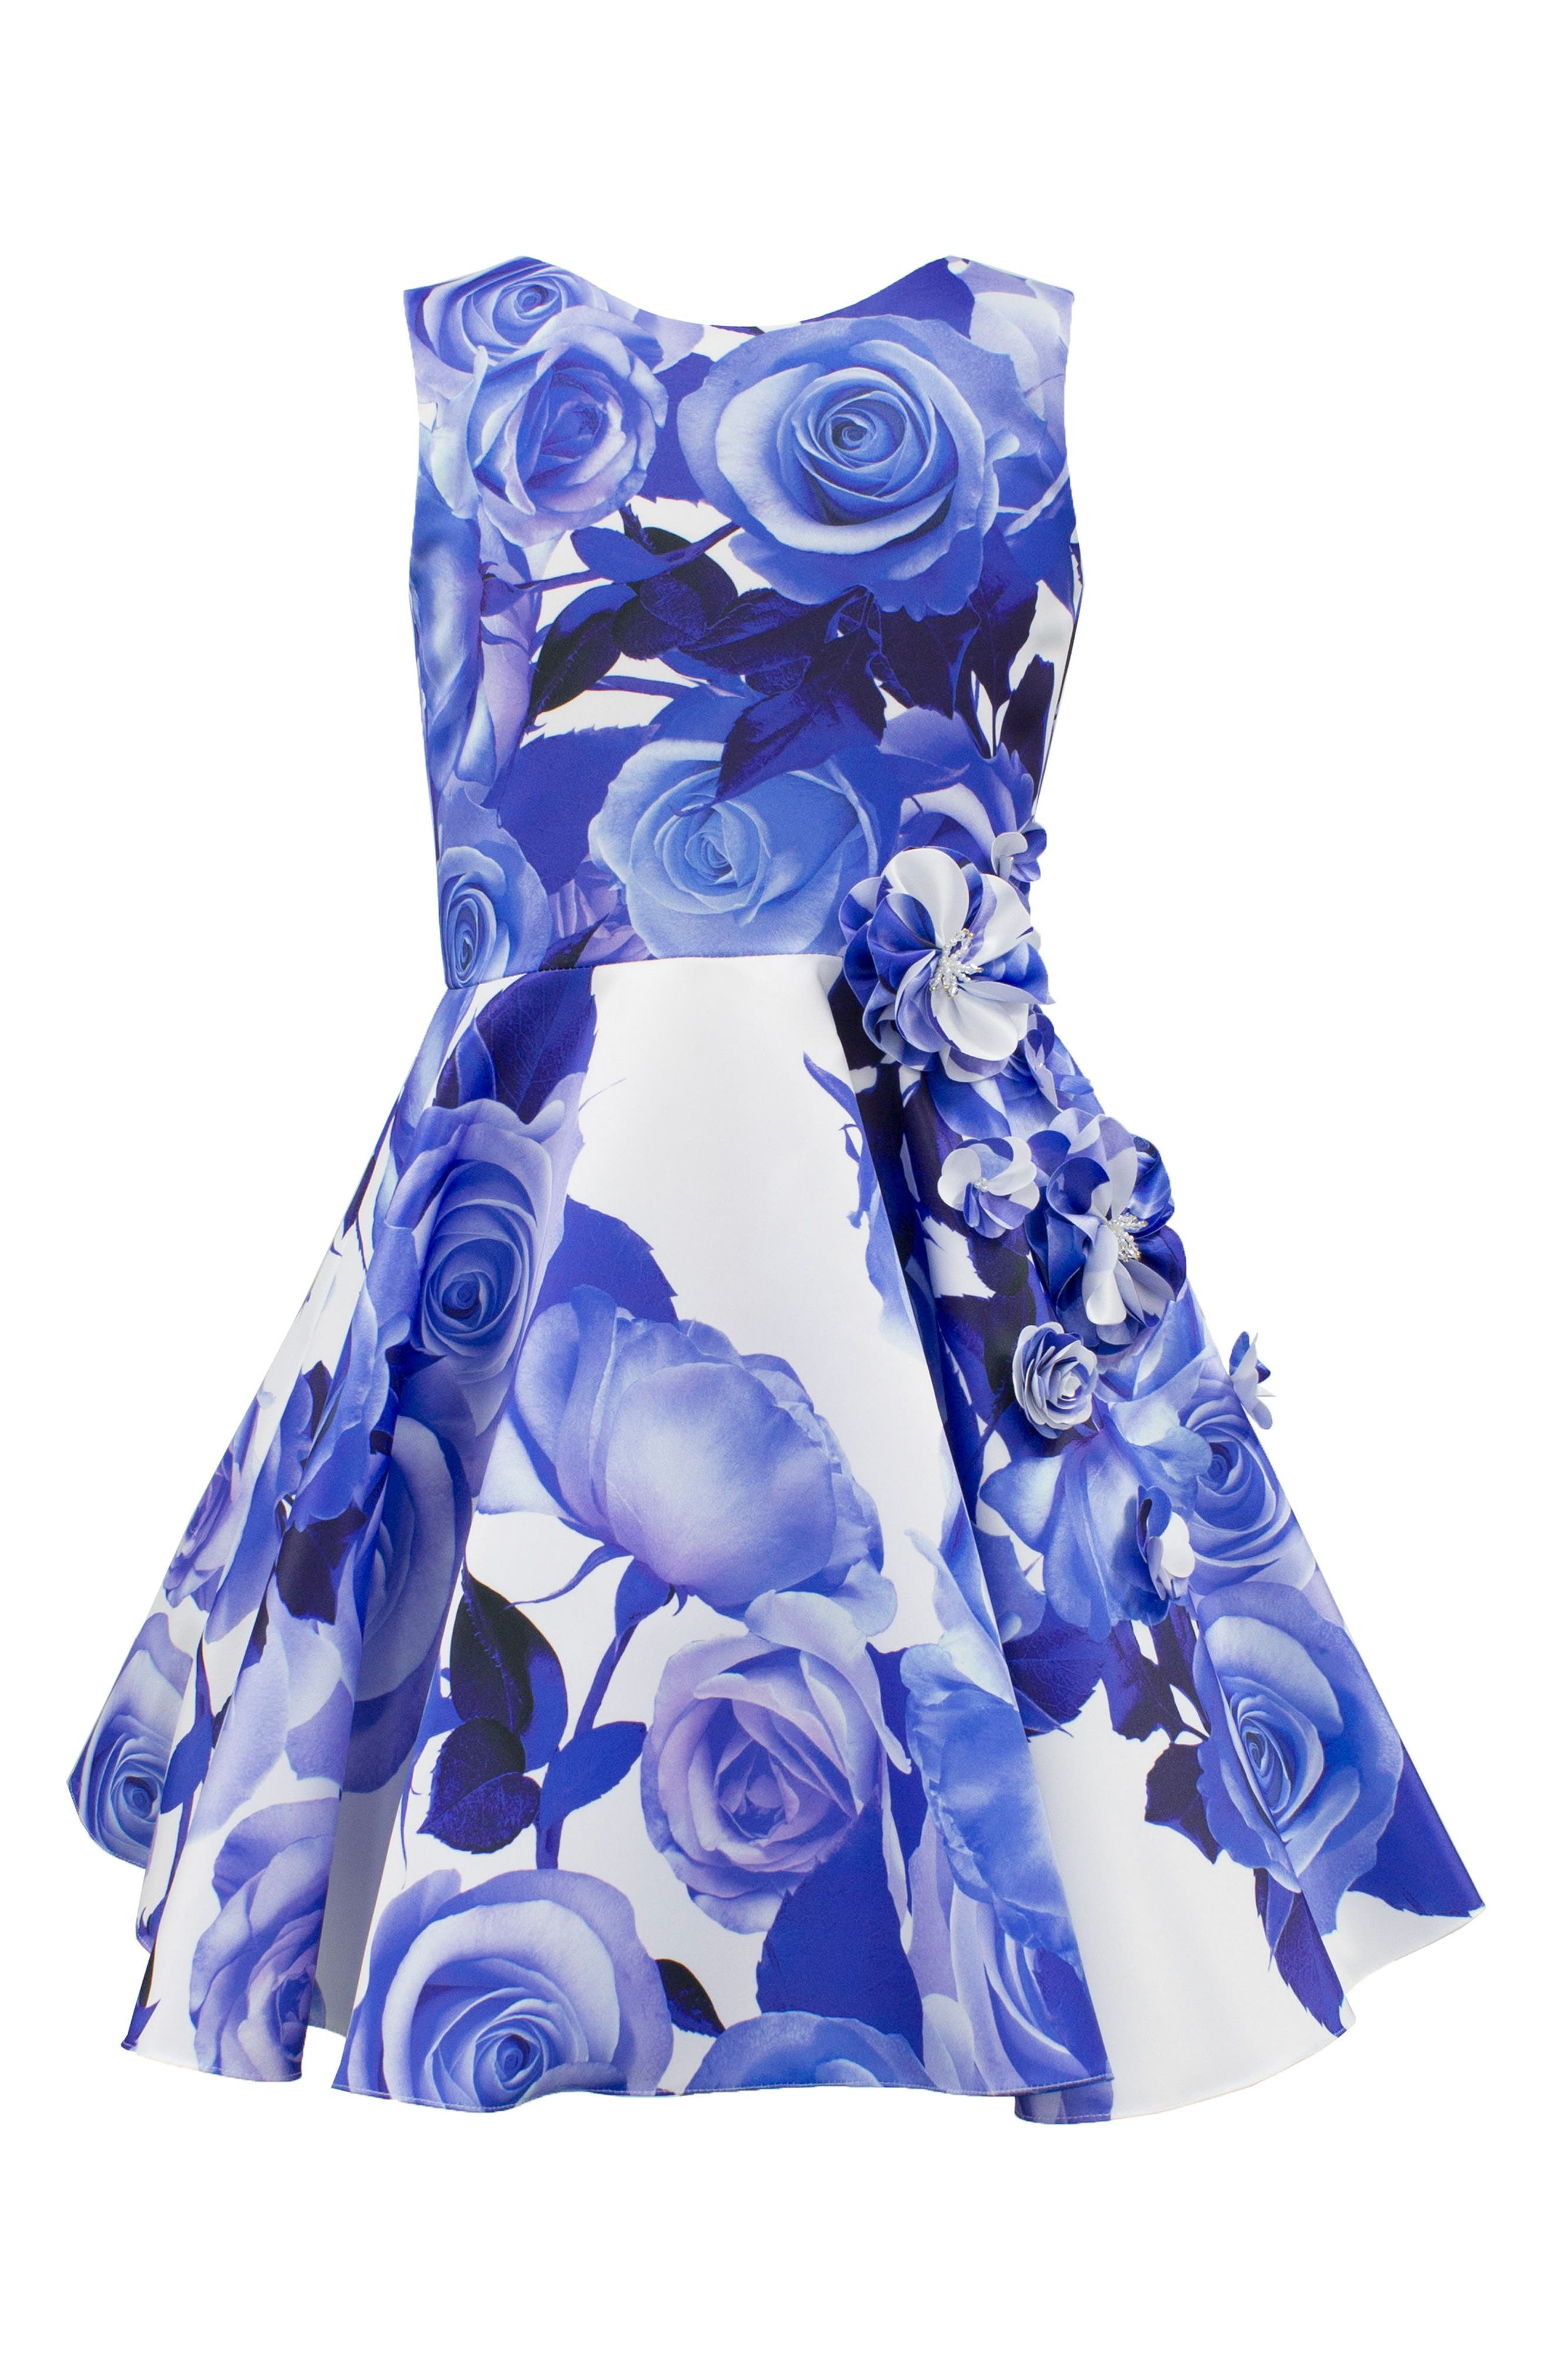 Rose Print Fit & Flare Dress,                             Main thumbnail 1, color,                             420